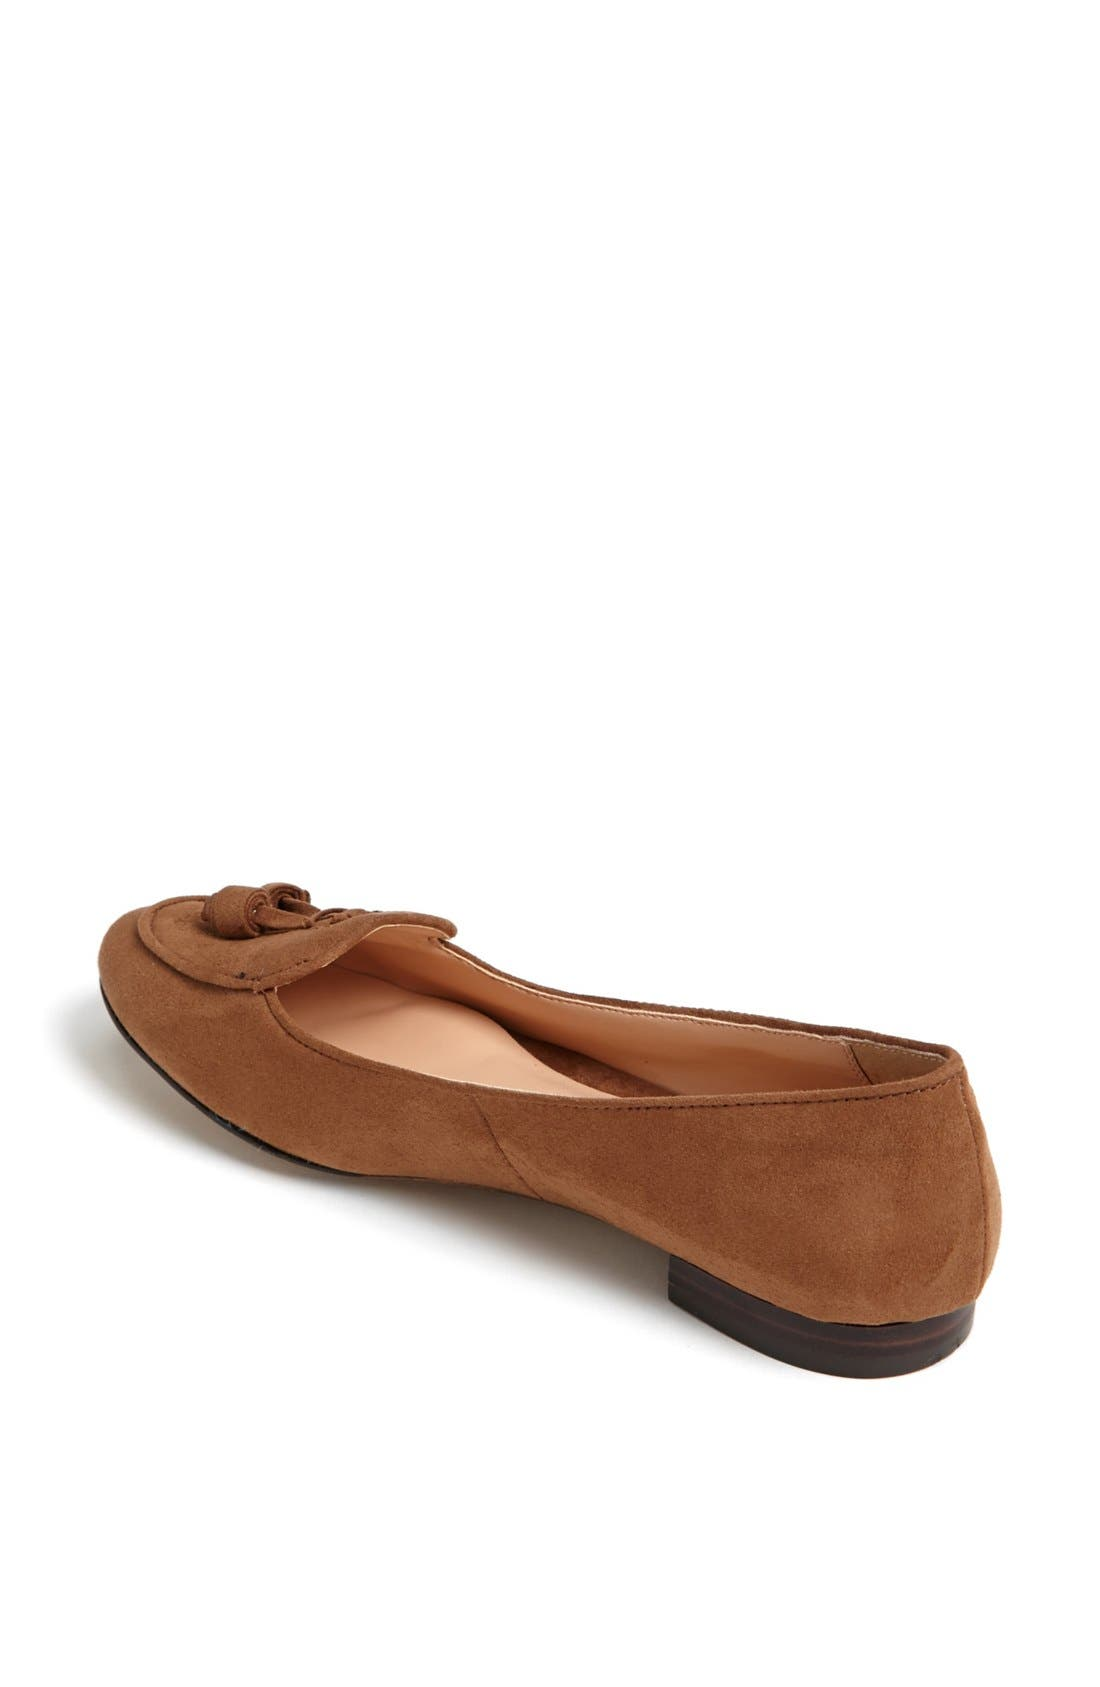 Alternate Image 2  - Julianne Hough for Sole Society 'Cambria' Smoking Slipper Flat